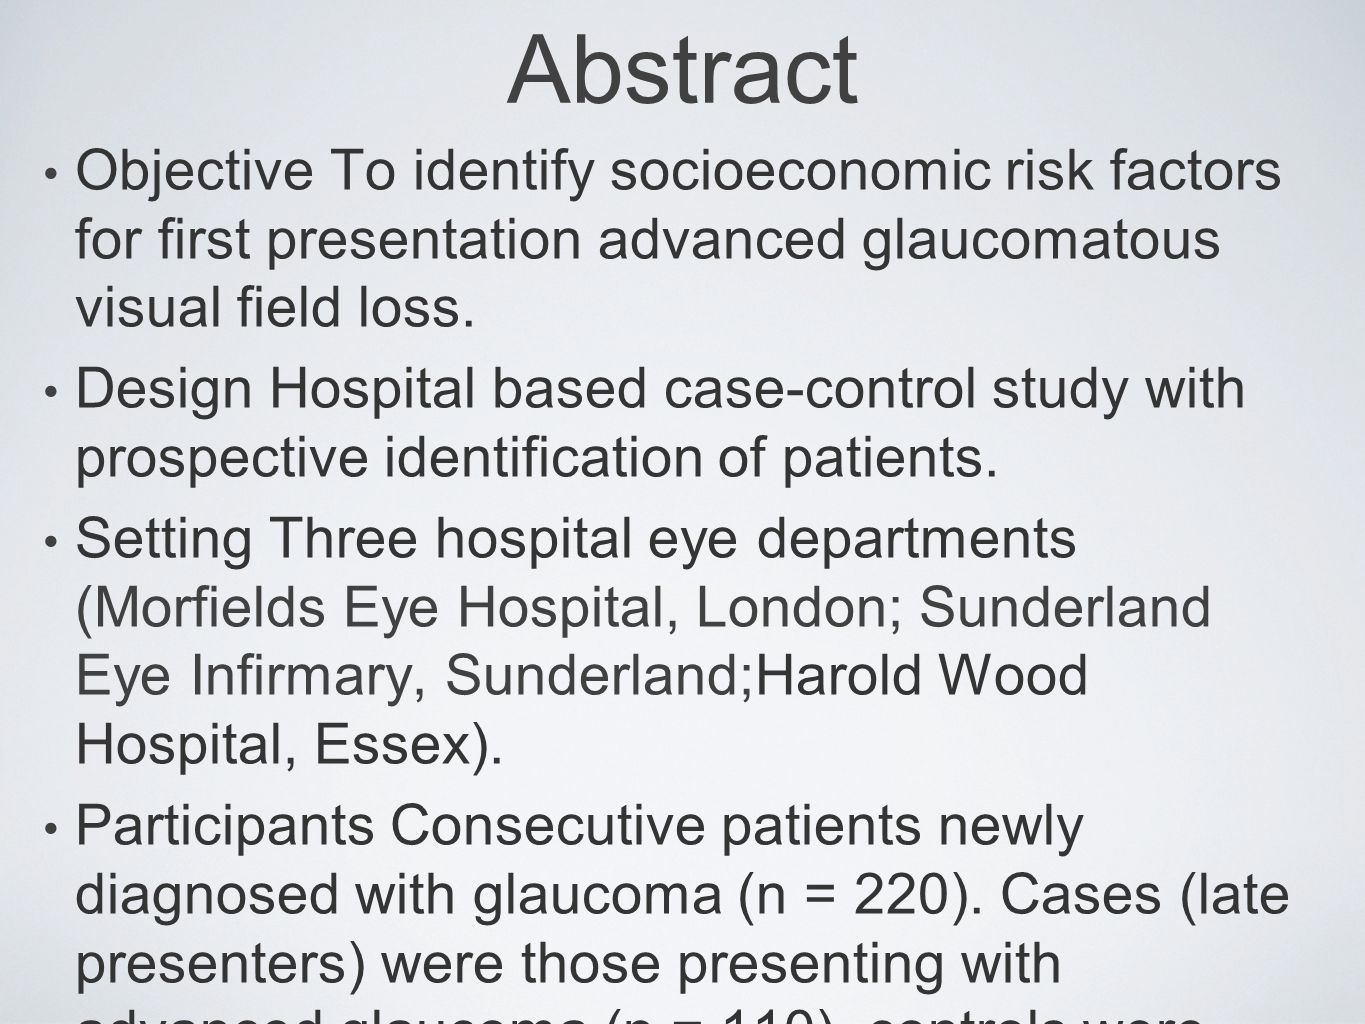 Abstract Objective To identify socioeconomic risk factors for first presentation advanced glaucomatous visual field loss.